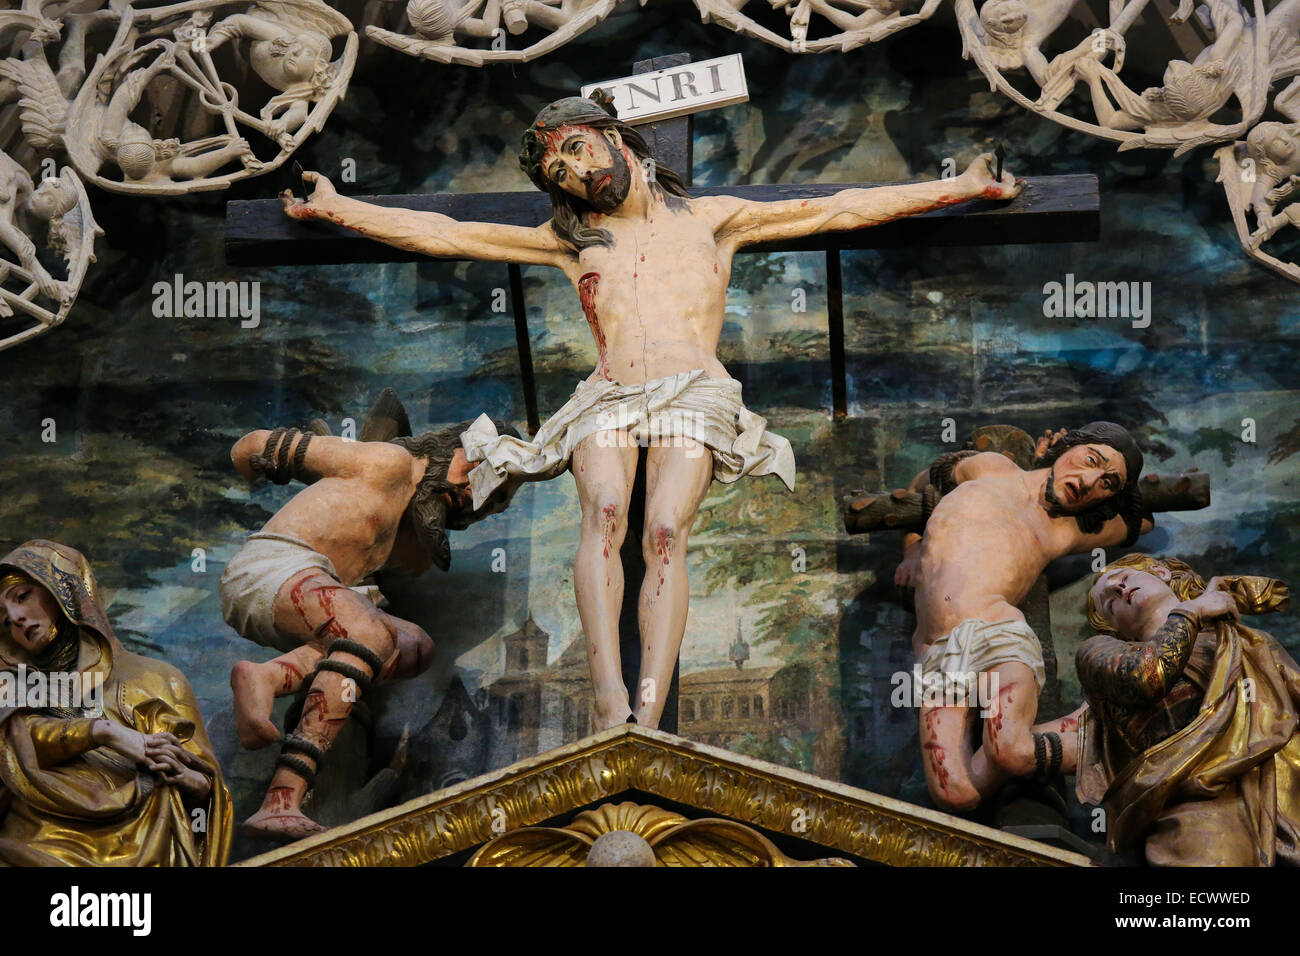 Crucifixion Scene in Burgos Cathedral, Castille, Spain. - Stock Image